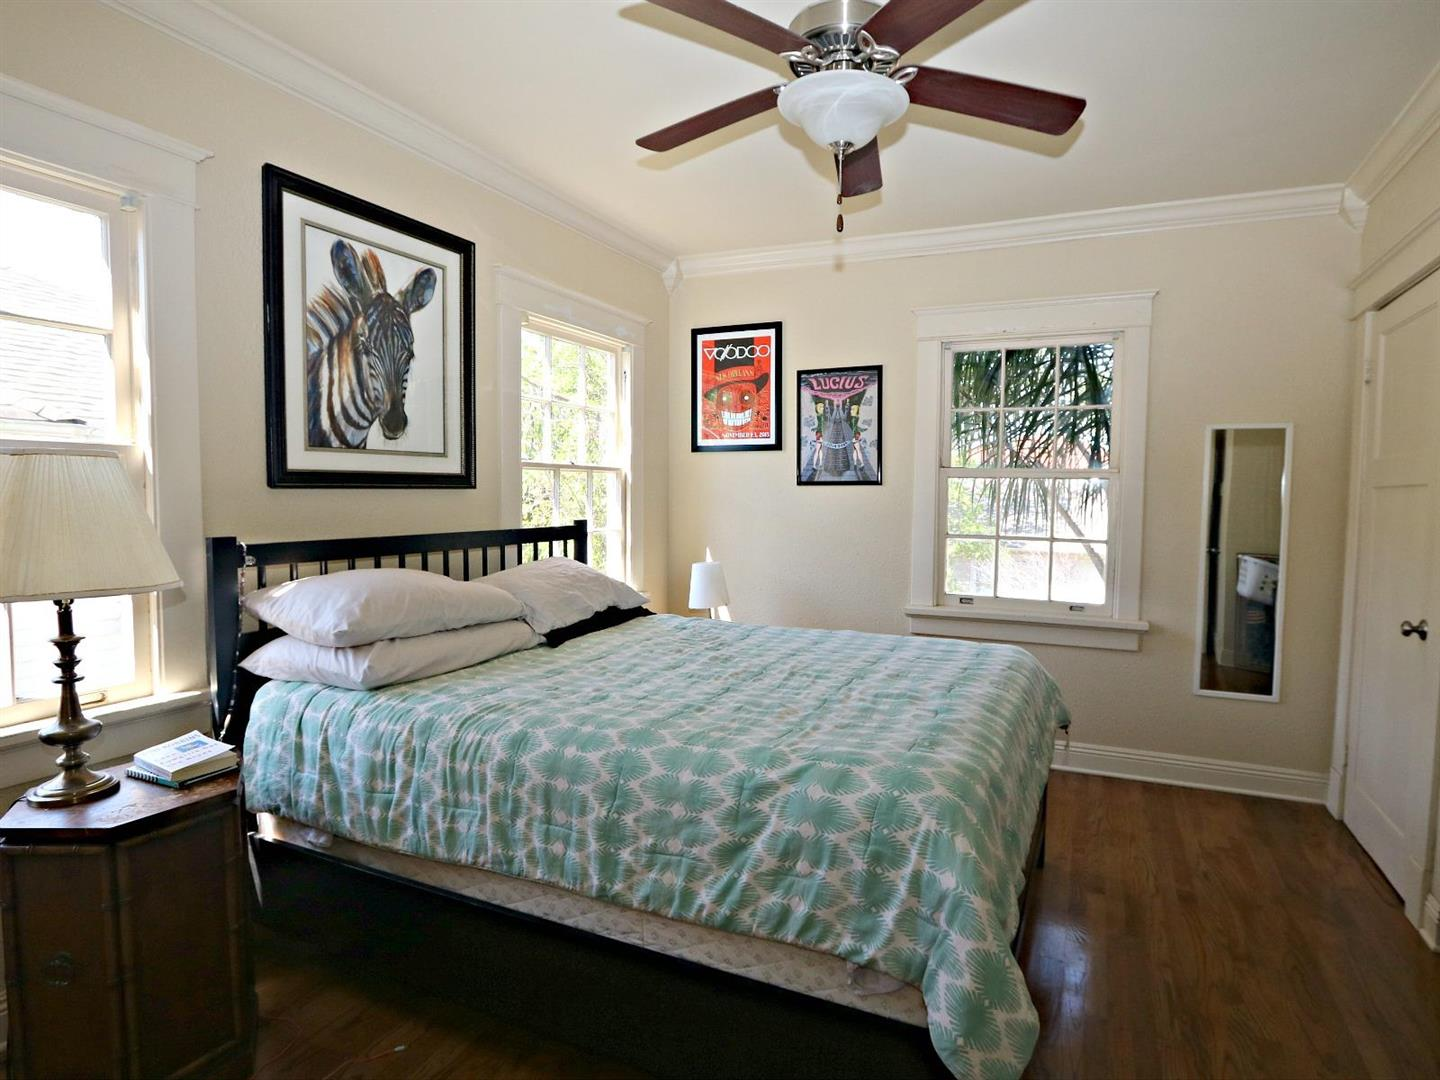 3322UpperlineBedroomBack.jpg